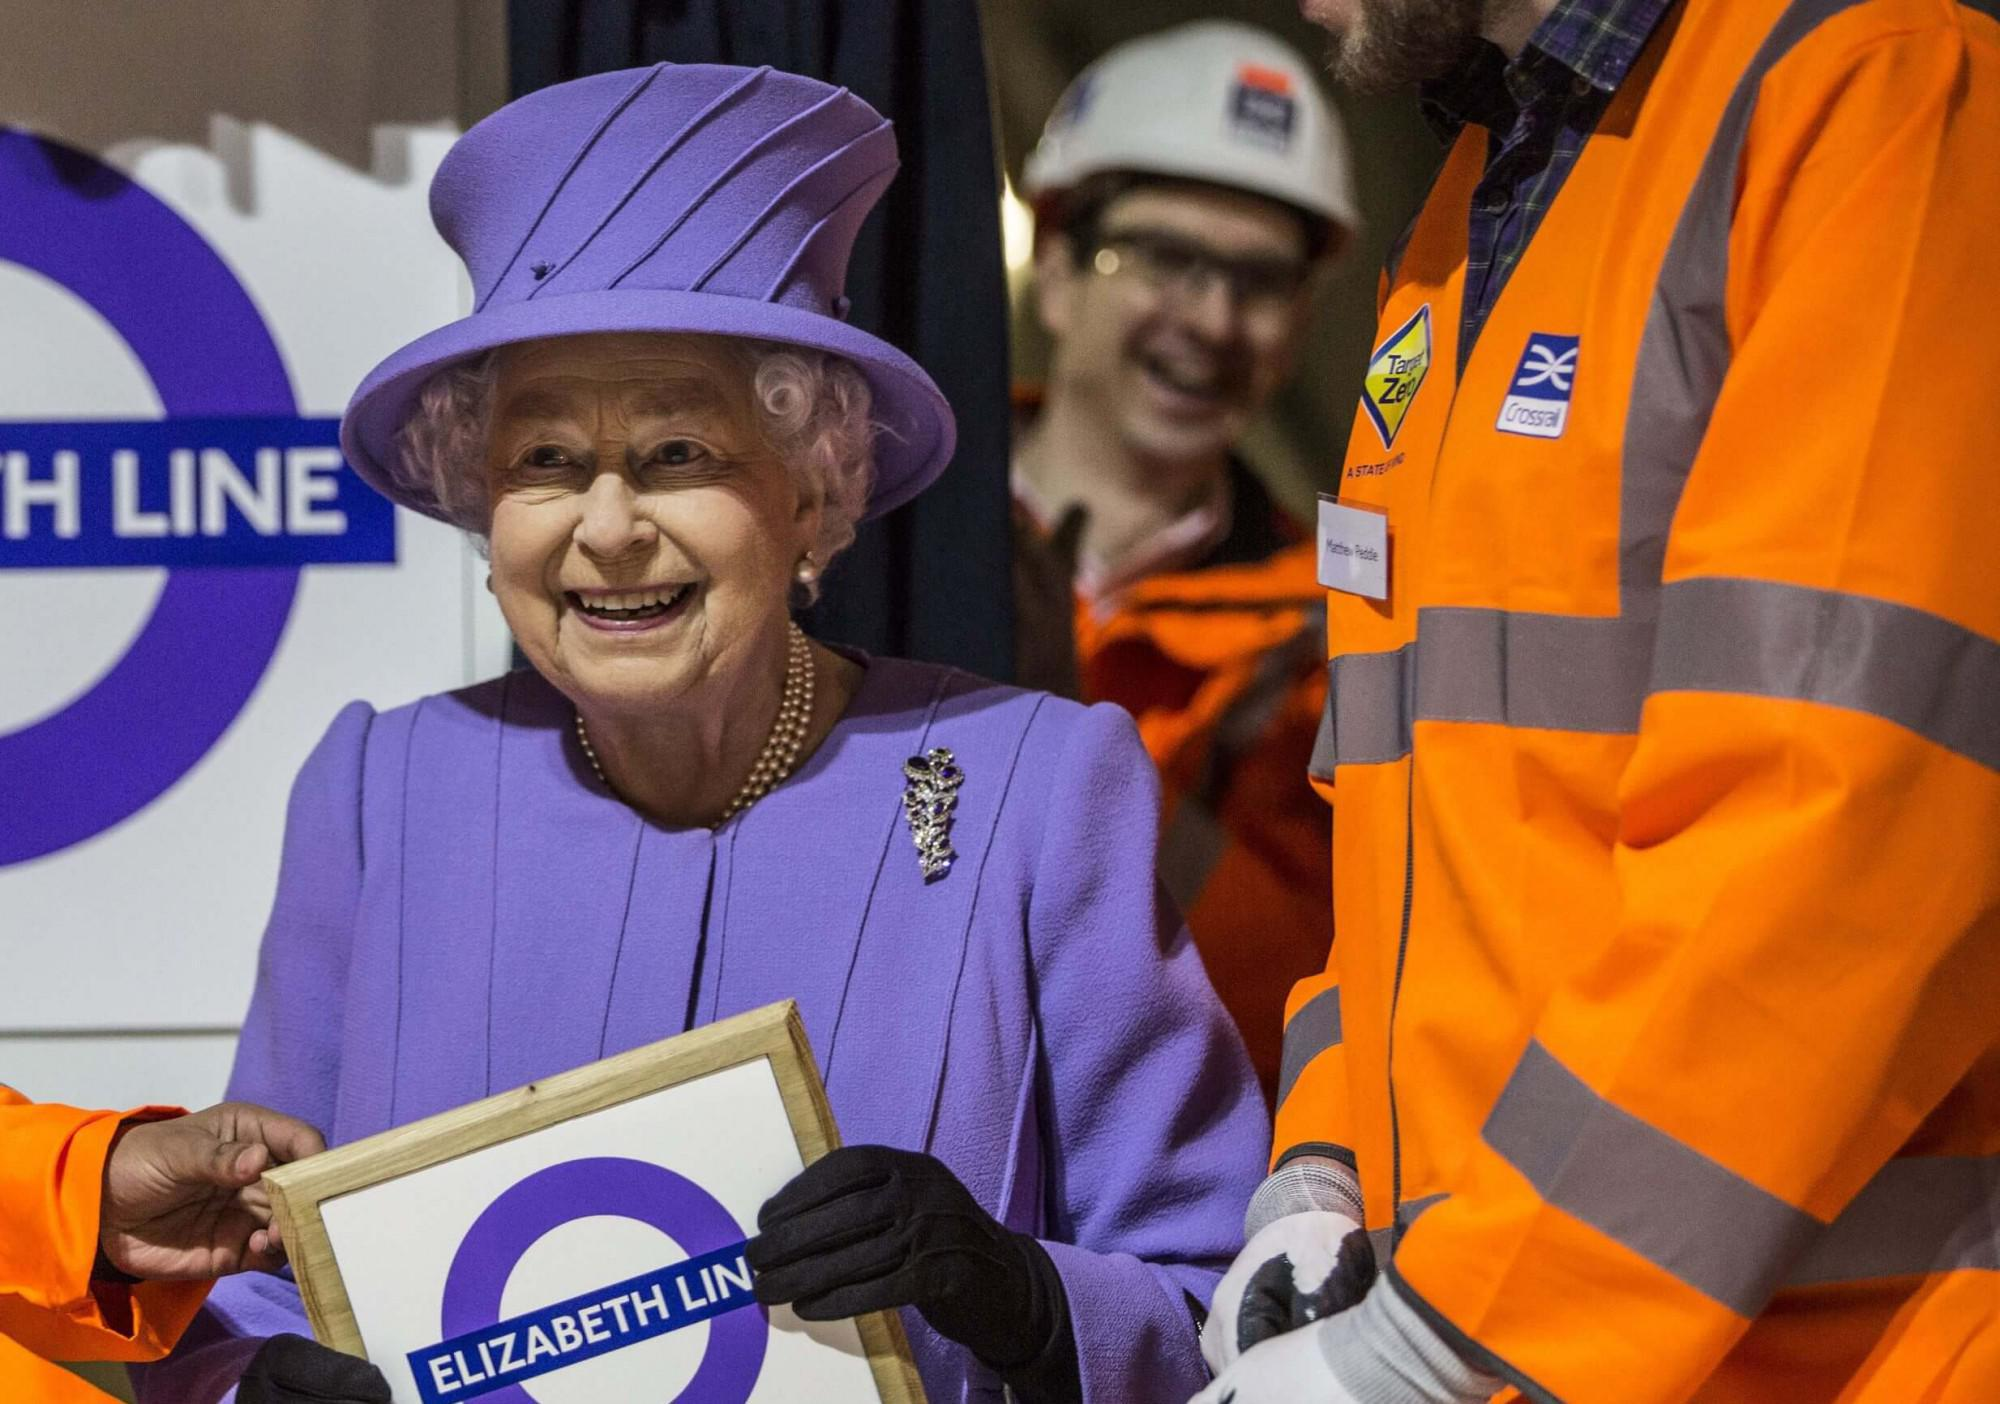 Elizabeth Line unveiled by Her Majesty the Queen